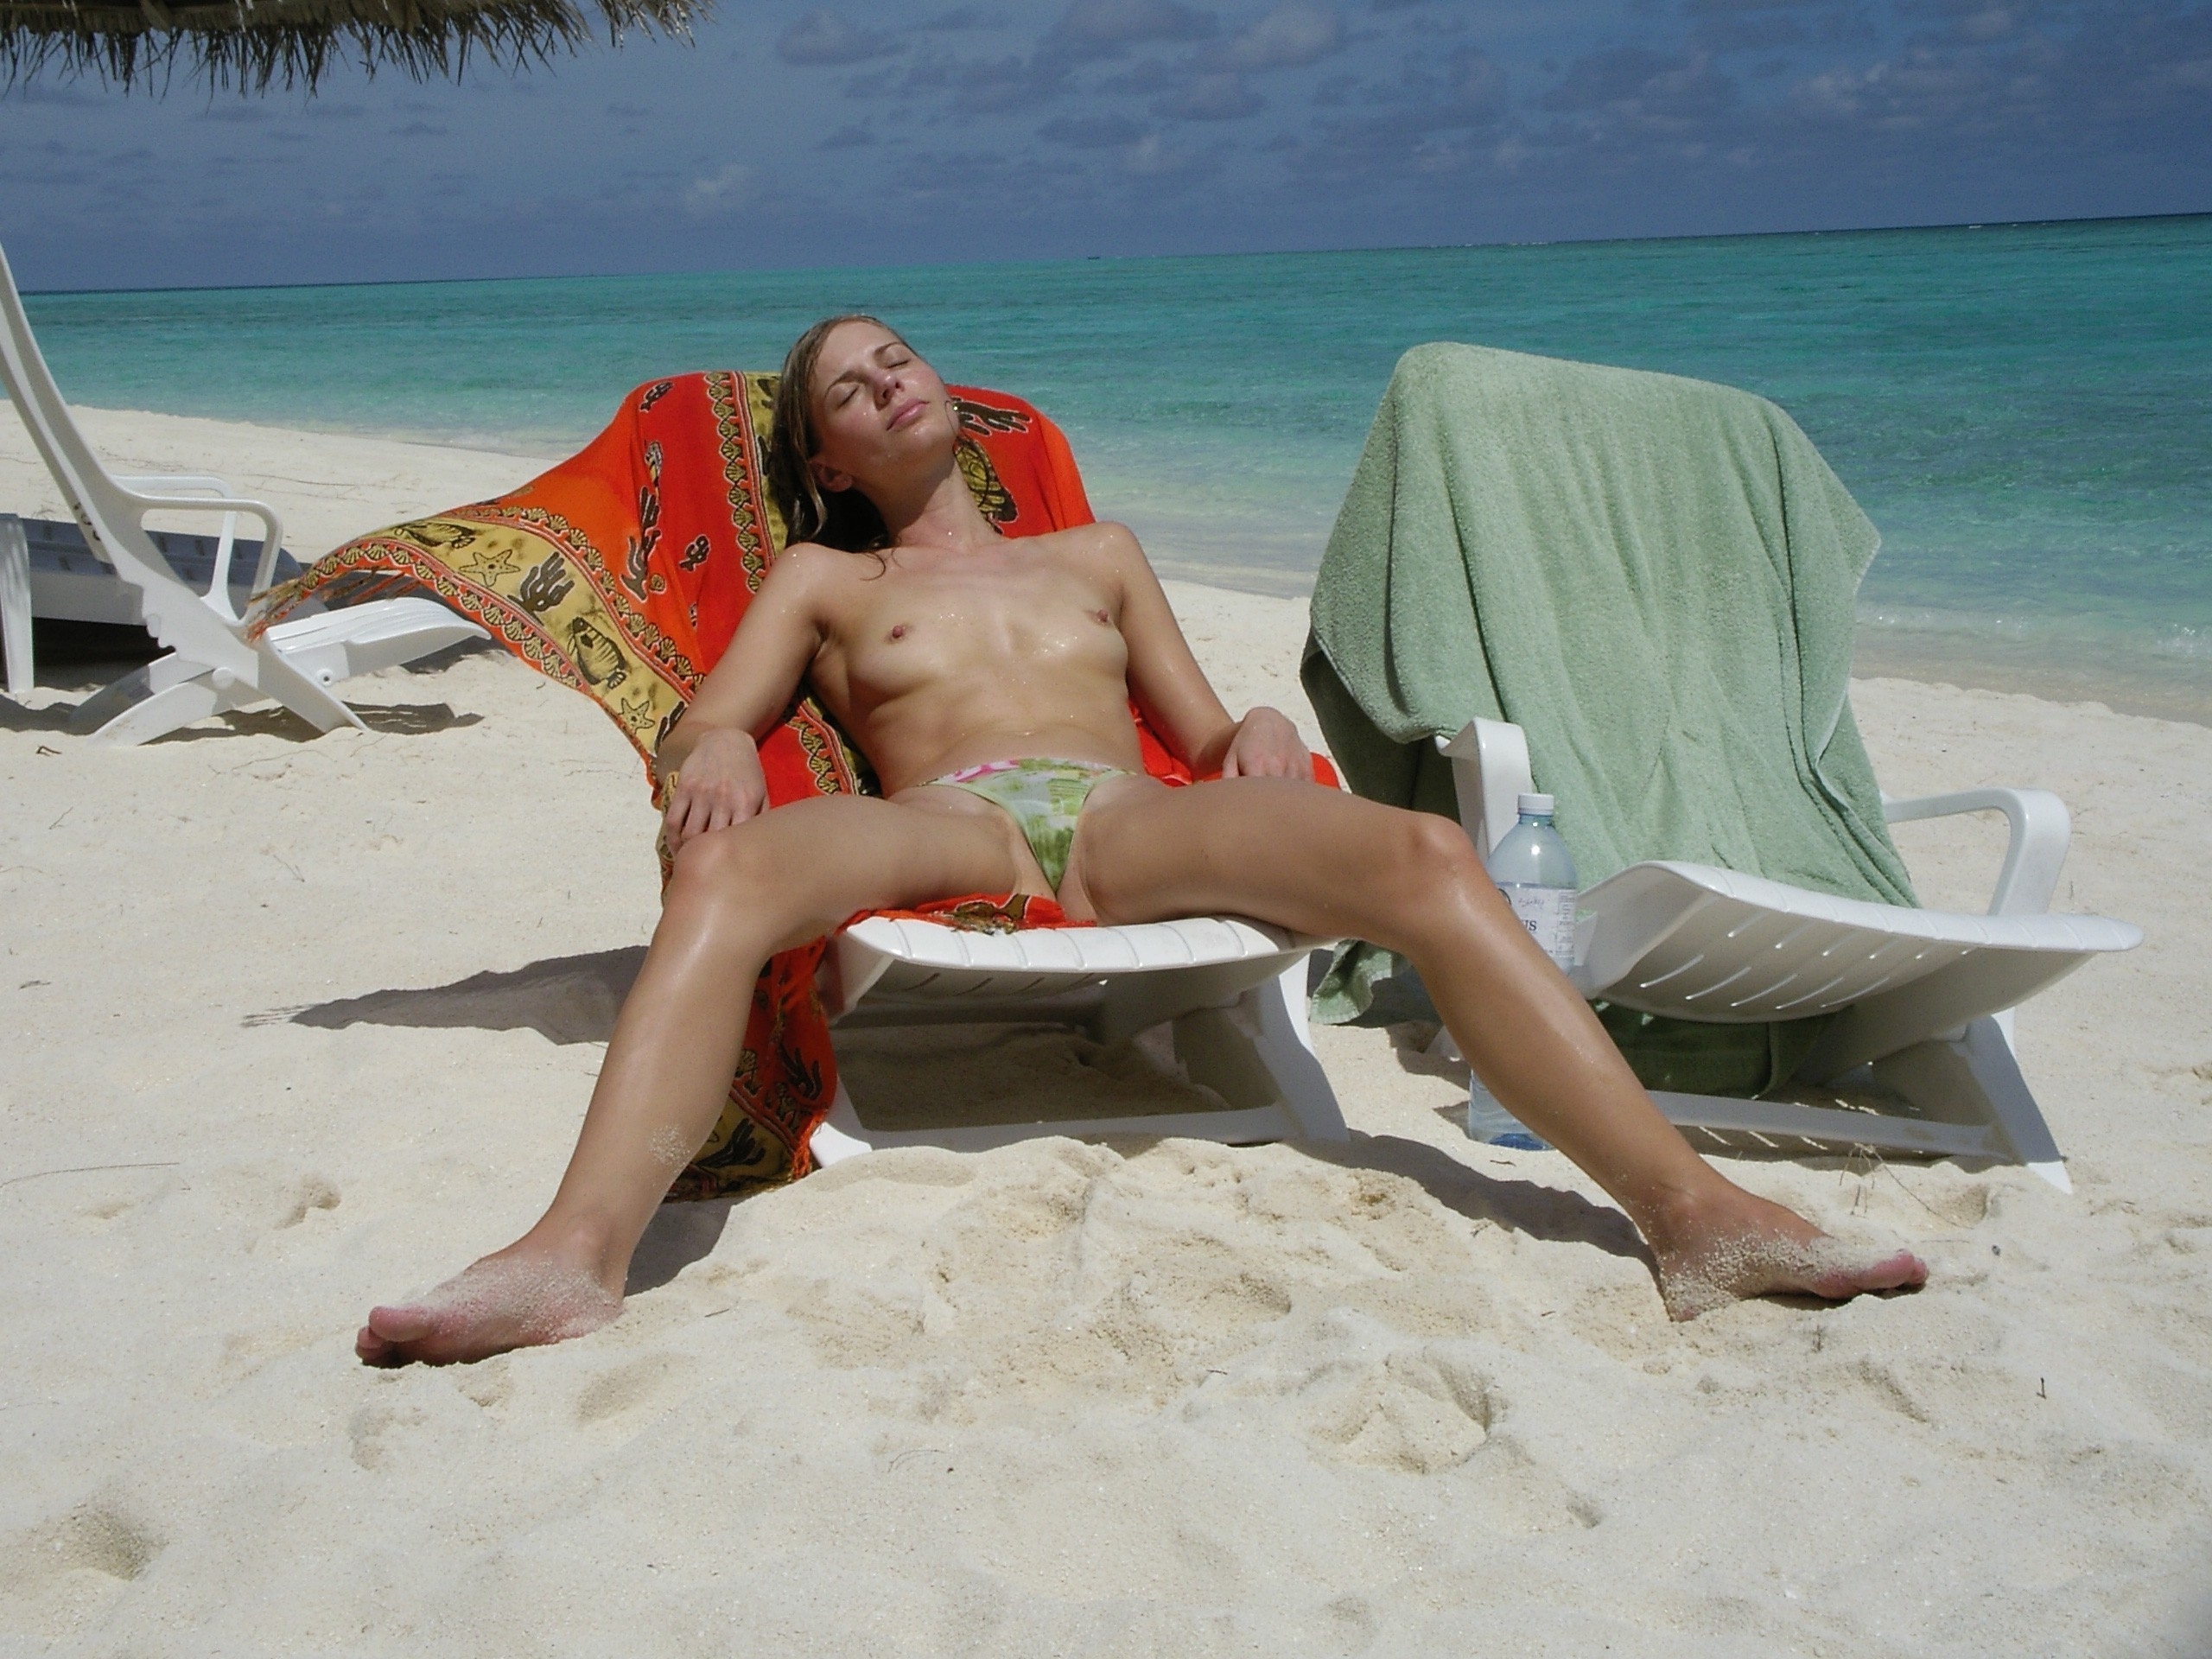 Nude beach girls sunbathing naked